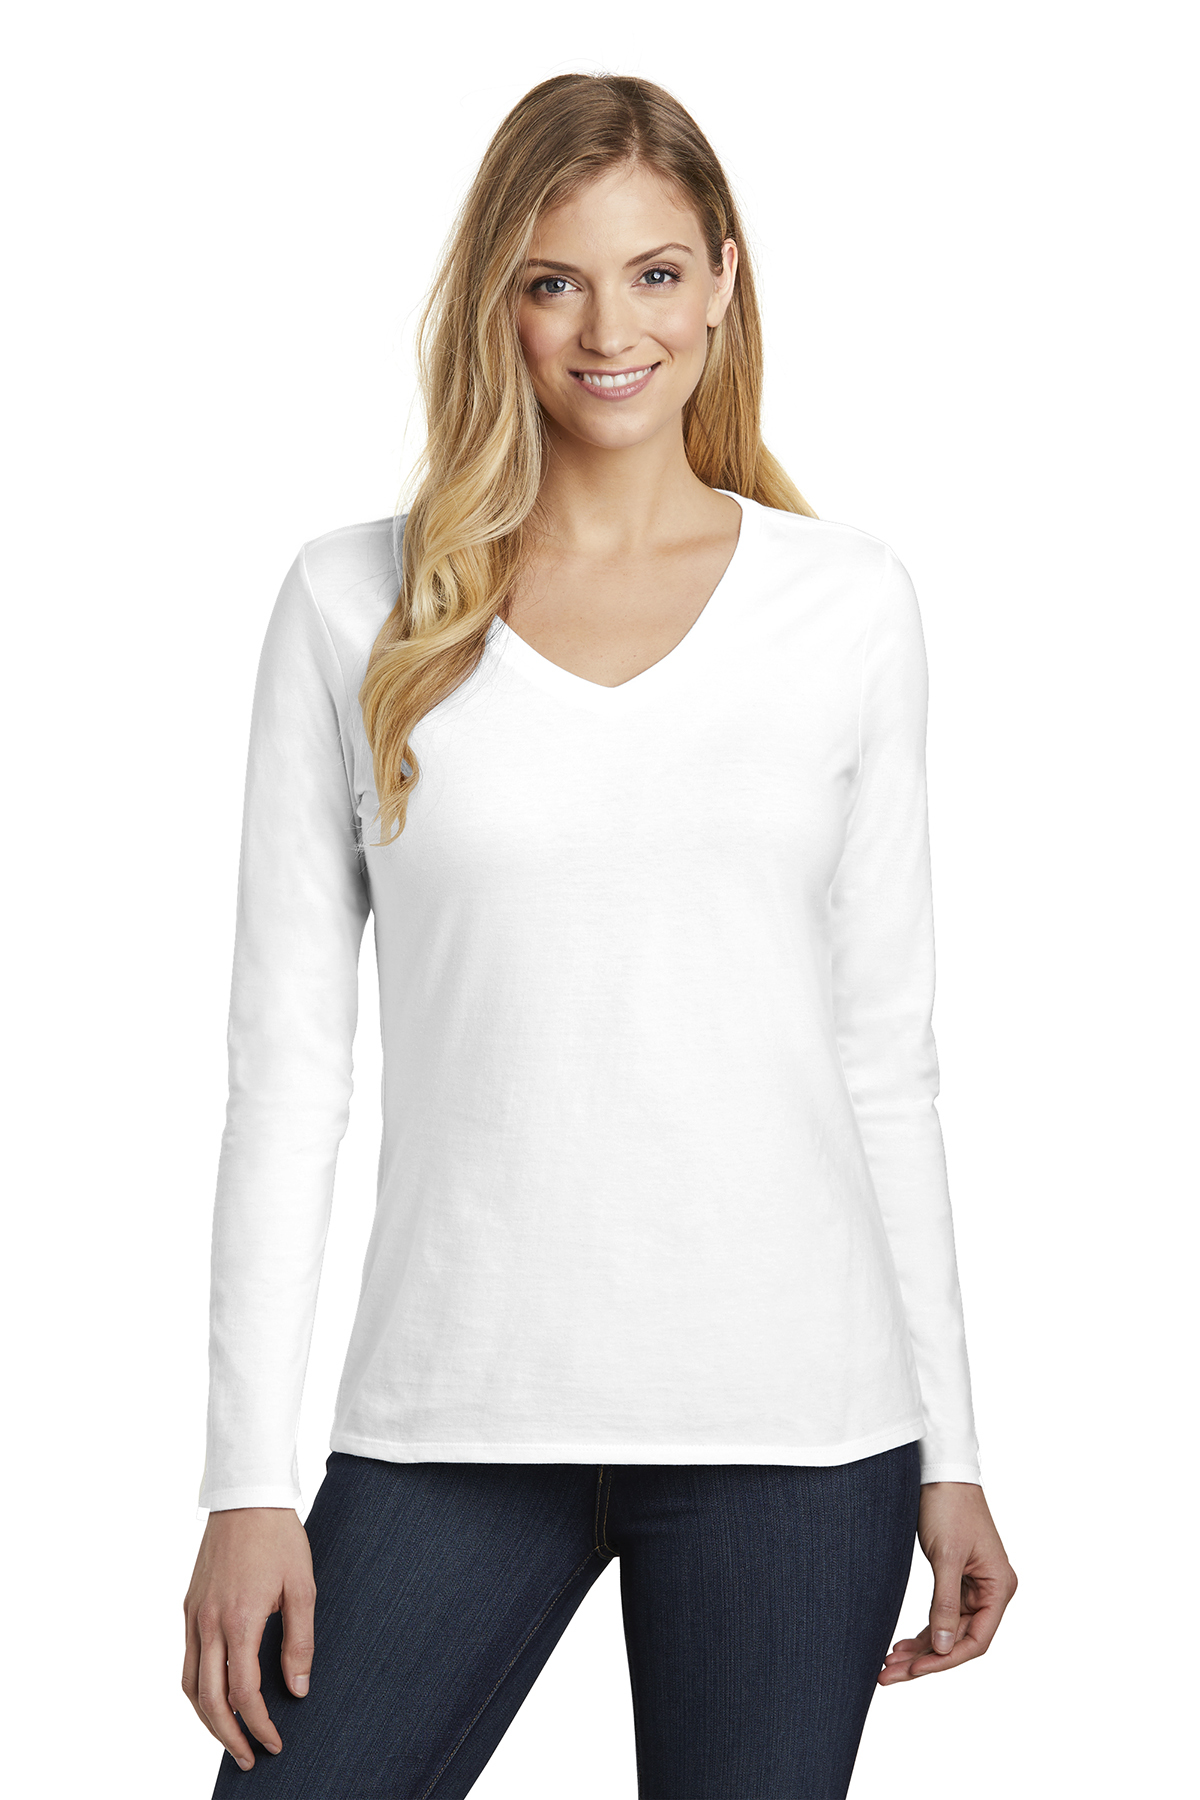 District DT6201 - Women's Very Important Tee Long Sleeve V-neck